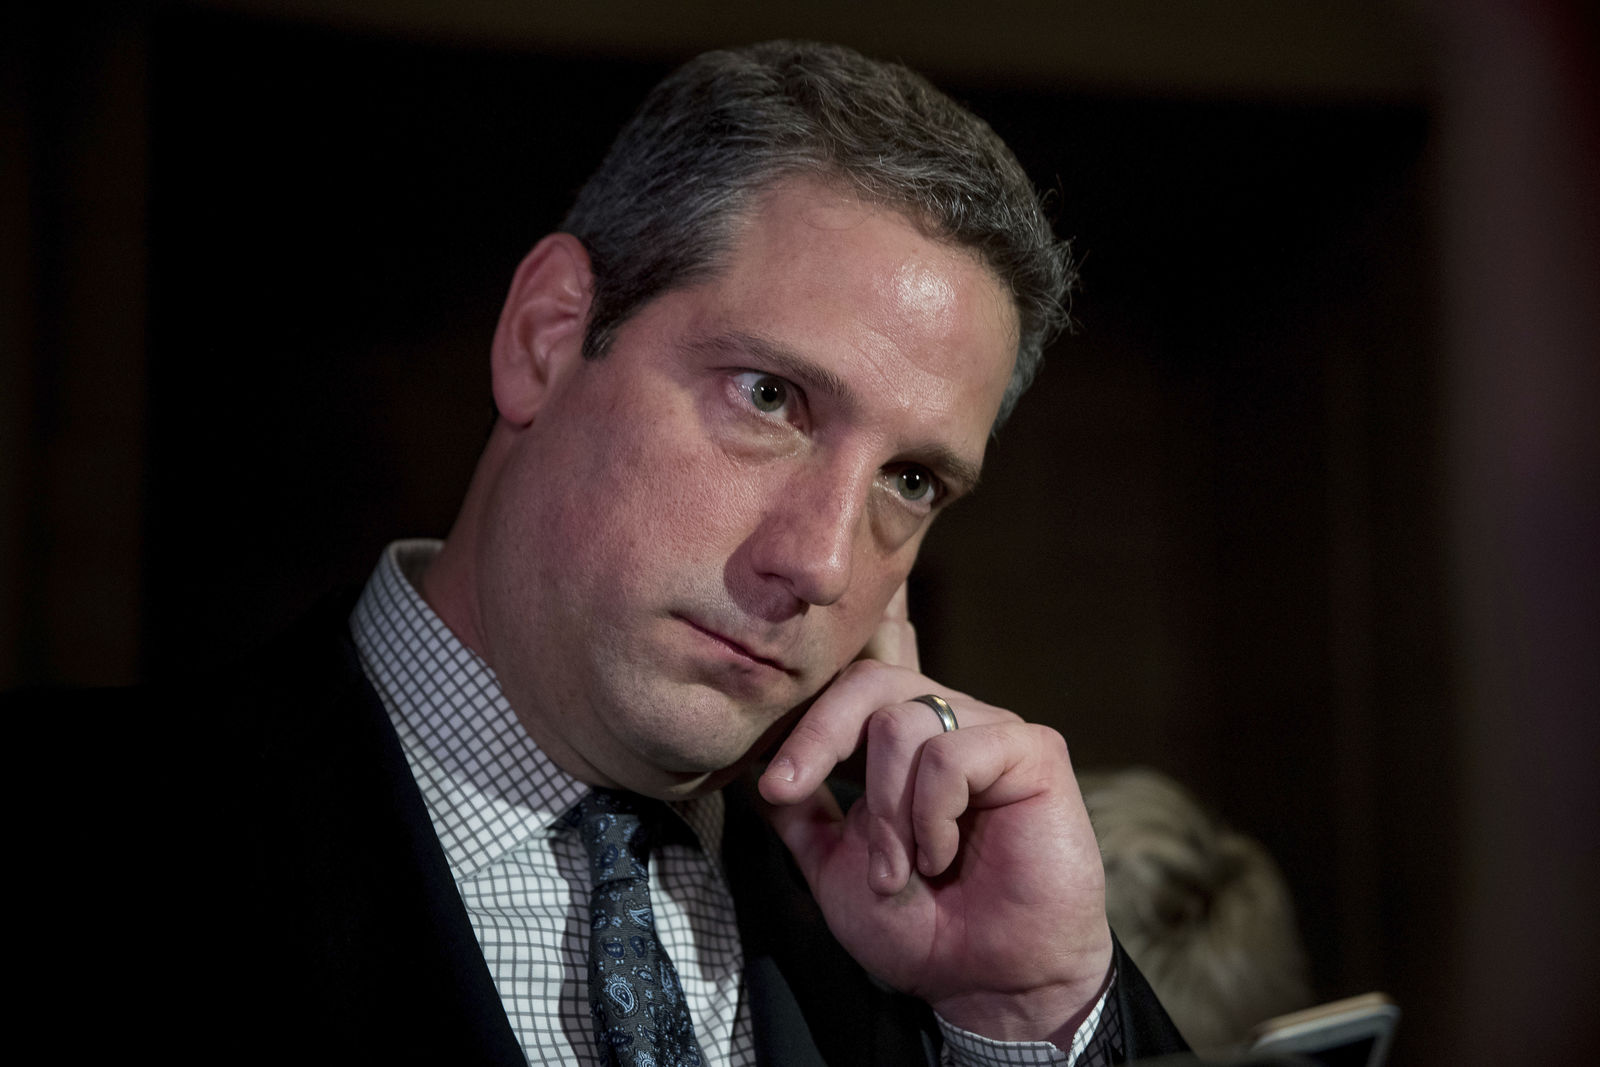 FILE - In this Nov. 30, 2016 file photo,  Rep. Tim Ryan, D-Ohio, pauses while speaking to members of the media following the House Democratic Caucus elections on Capitol Hill in Washington.(AP Photo/Andrew Harnik, File)